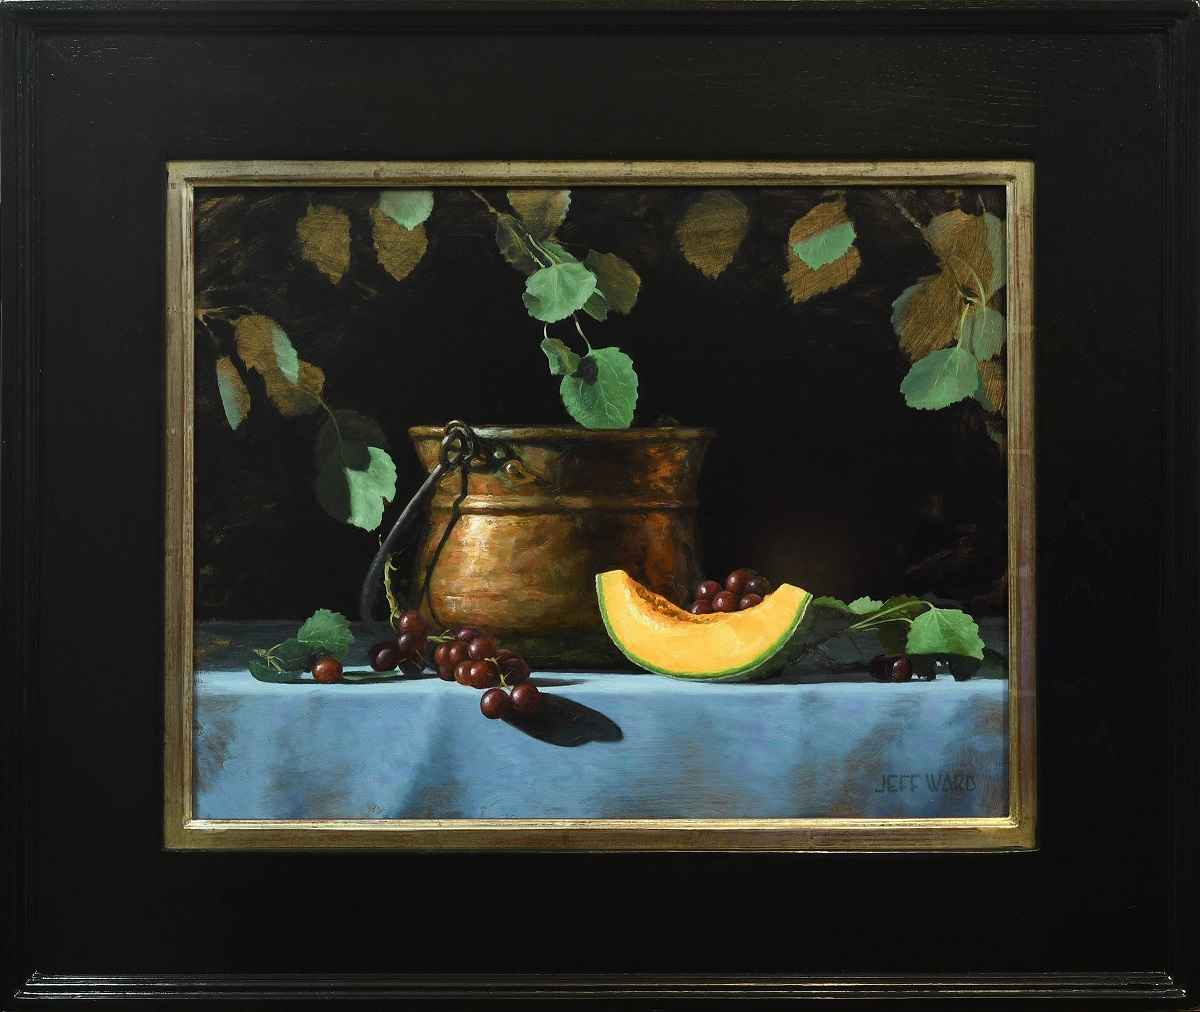 Copper and Melon by  Jeff Ward - Masterpiece Online